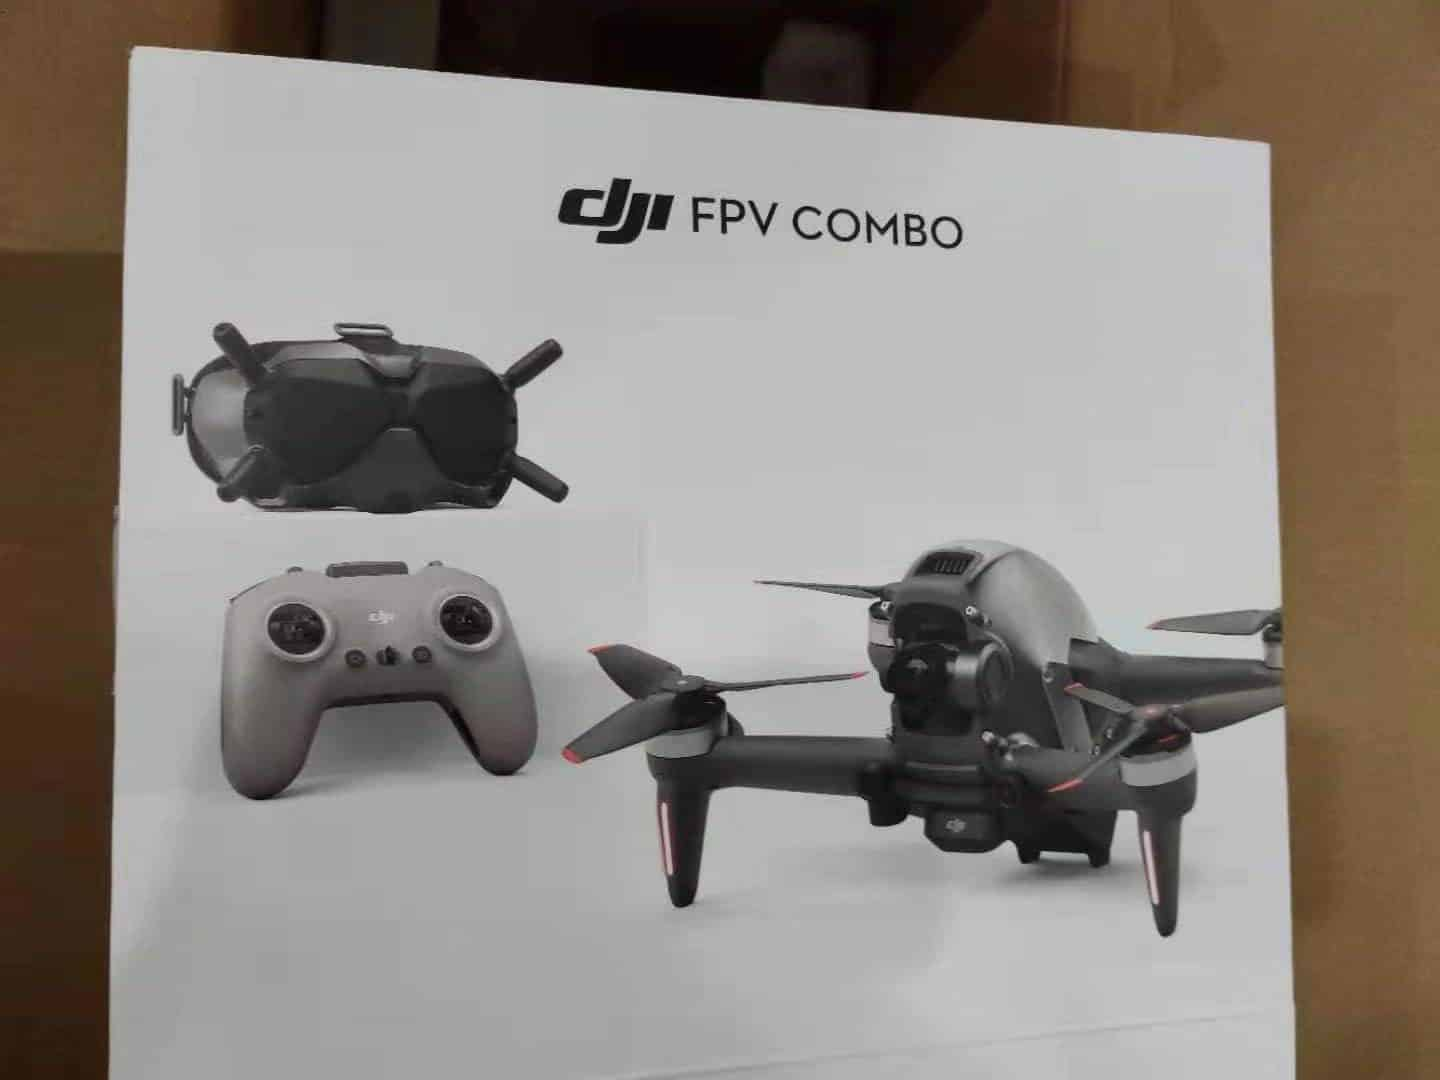 DJI FPV Drone leaked photos - DJI FPV Goggles V2 and DJI FPV Remote Controller 2 confirmed in FCC filings